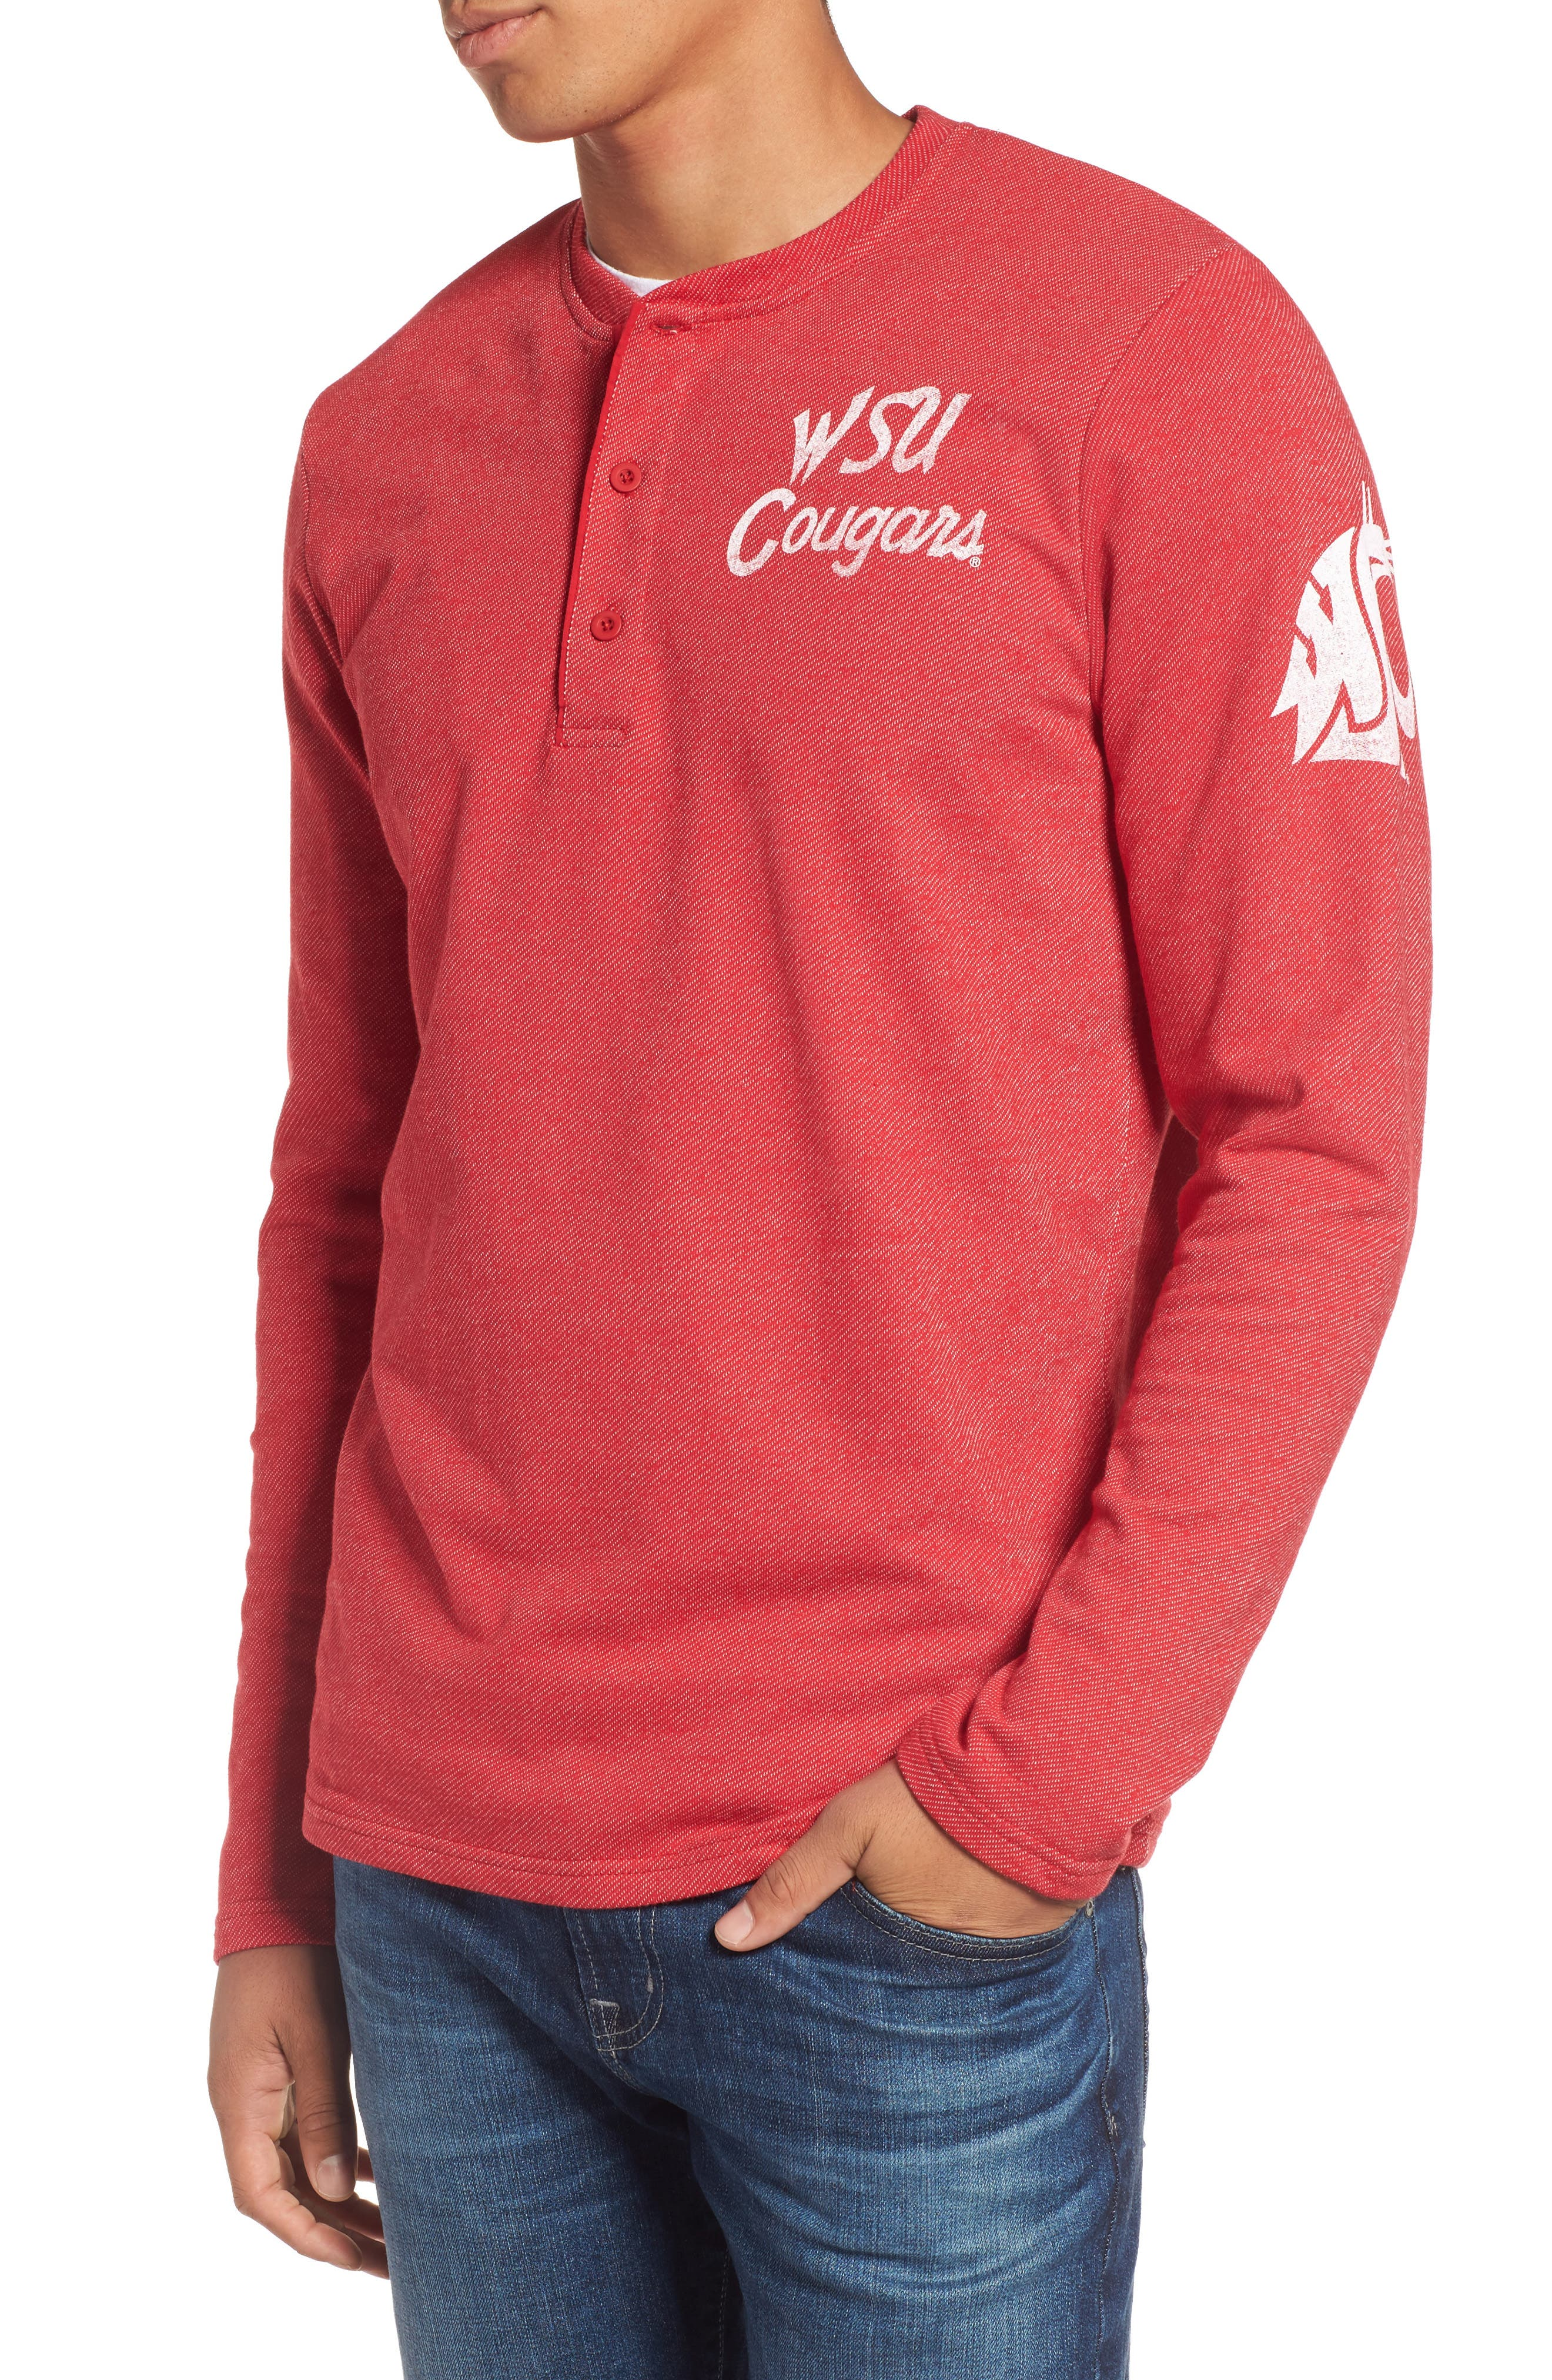 Washington State University Cougars Henley,                         Main,                         color, Red